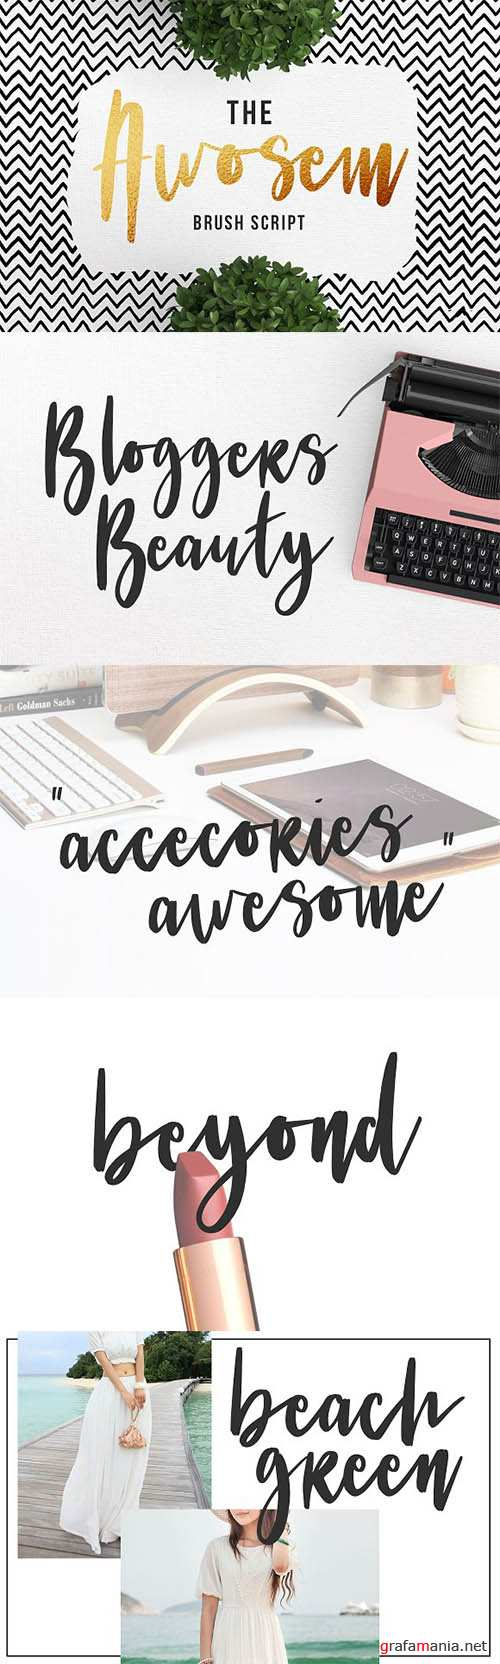 Awosem Typeface - Typography Quote 2190434